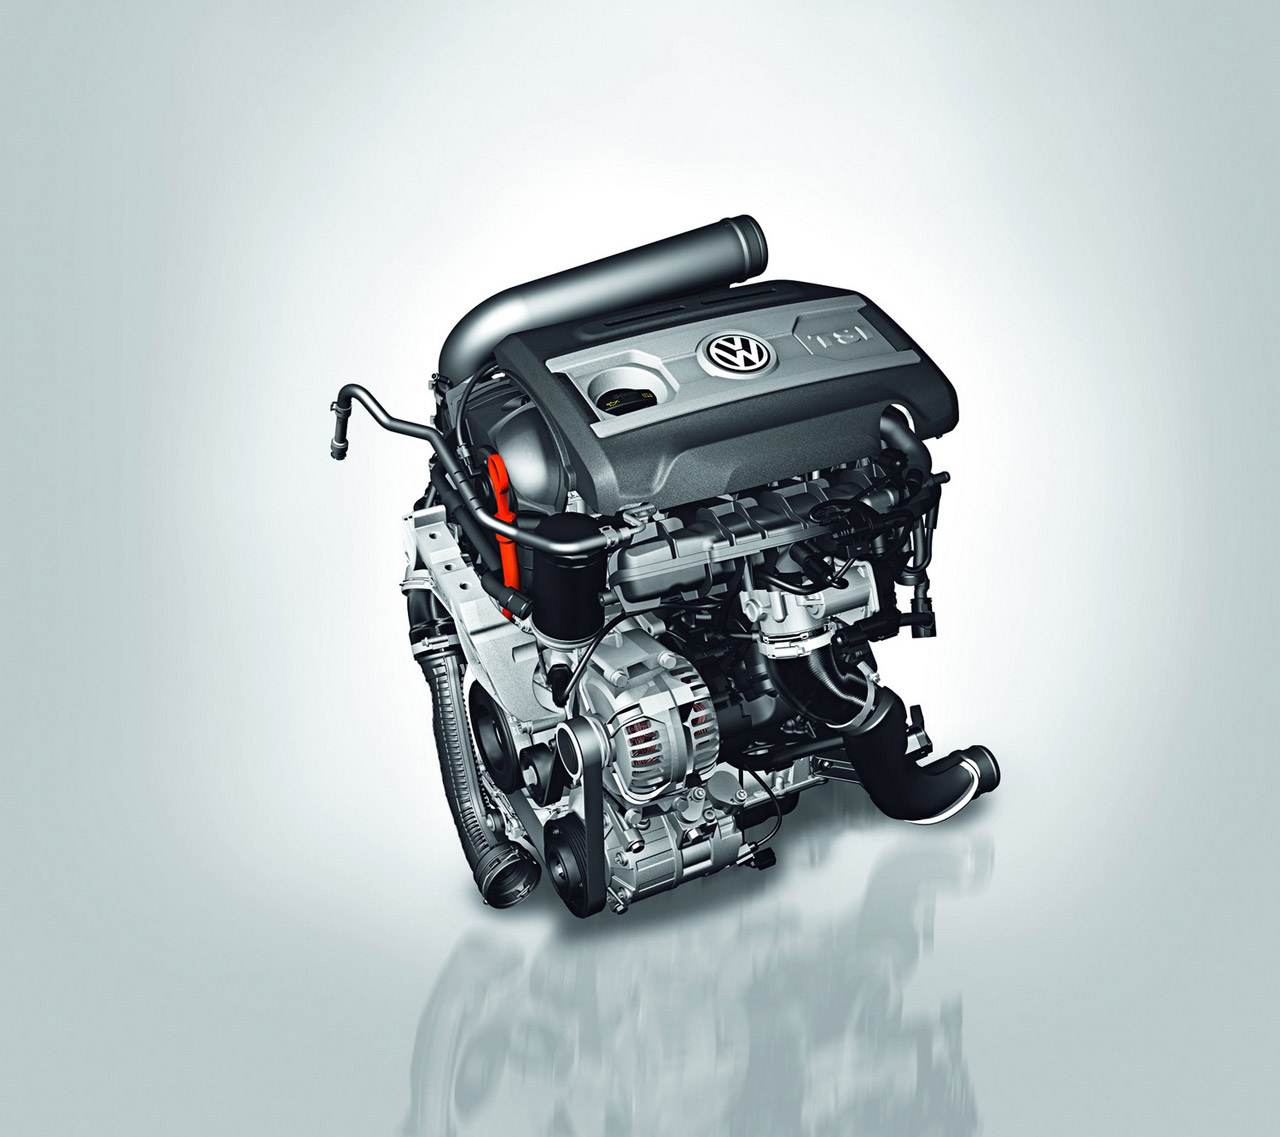 Volkswagen Tsi Engines Explained Autoevolution Turbo Engine Diagram